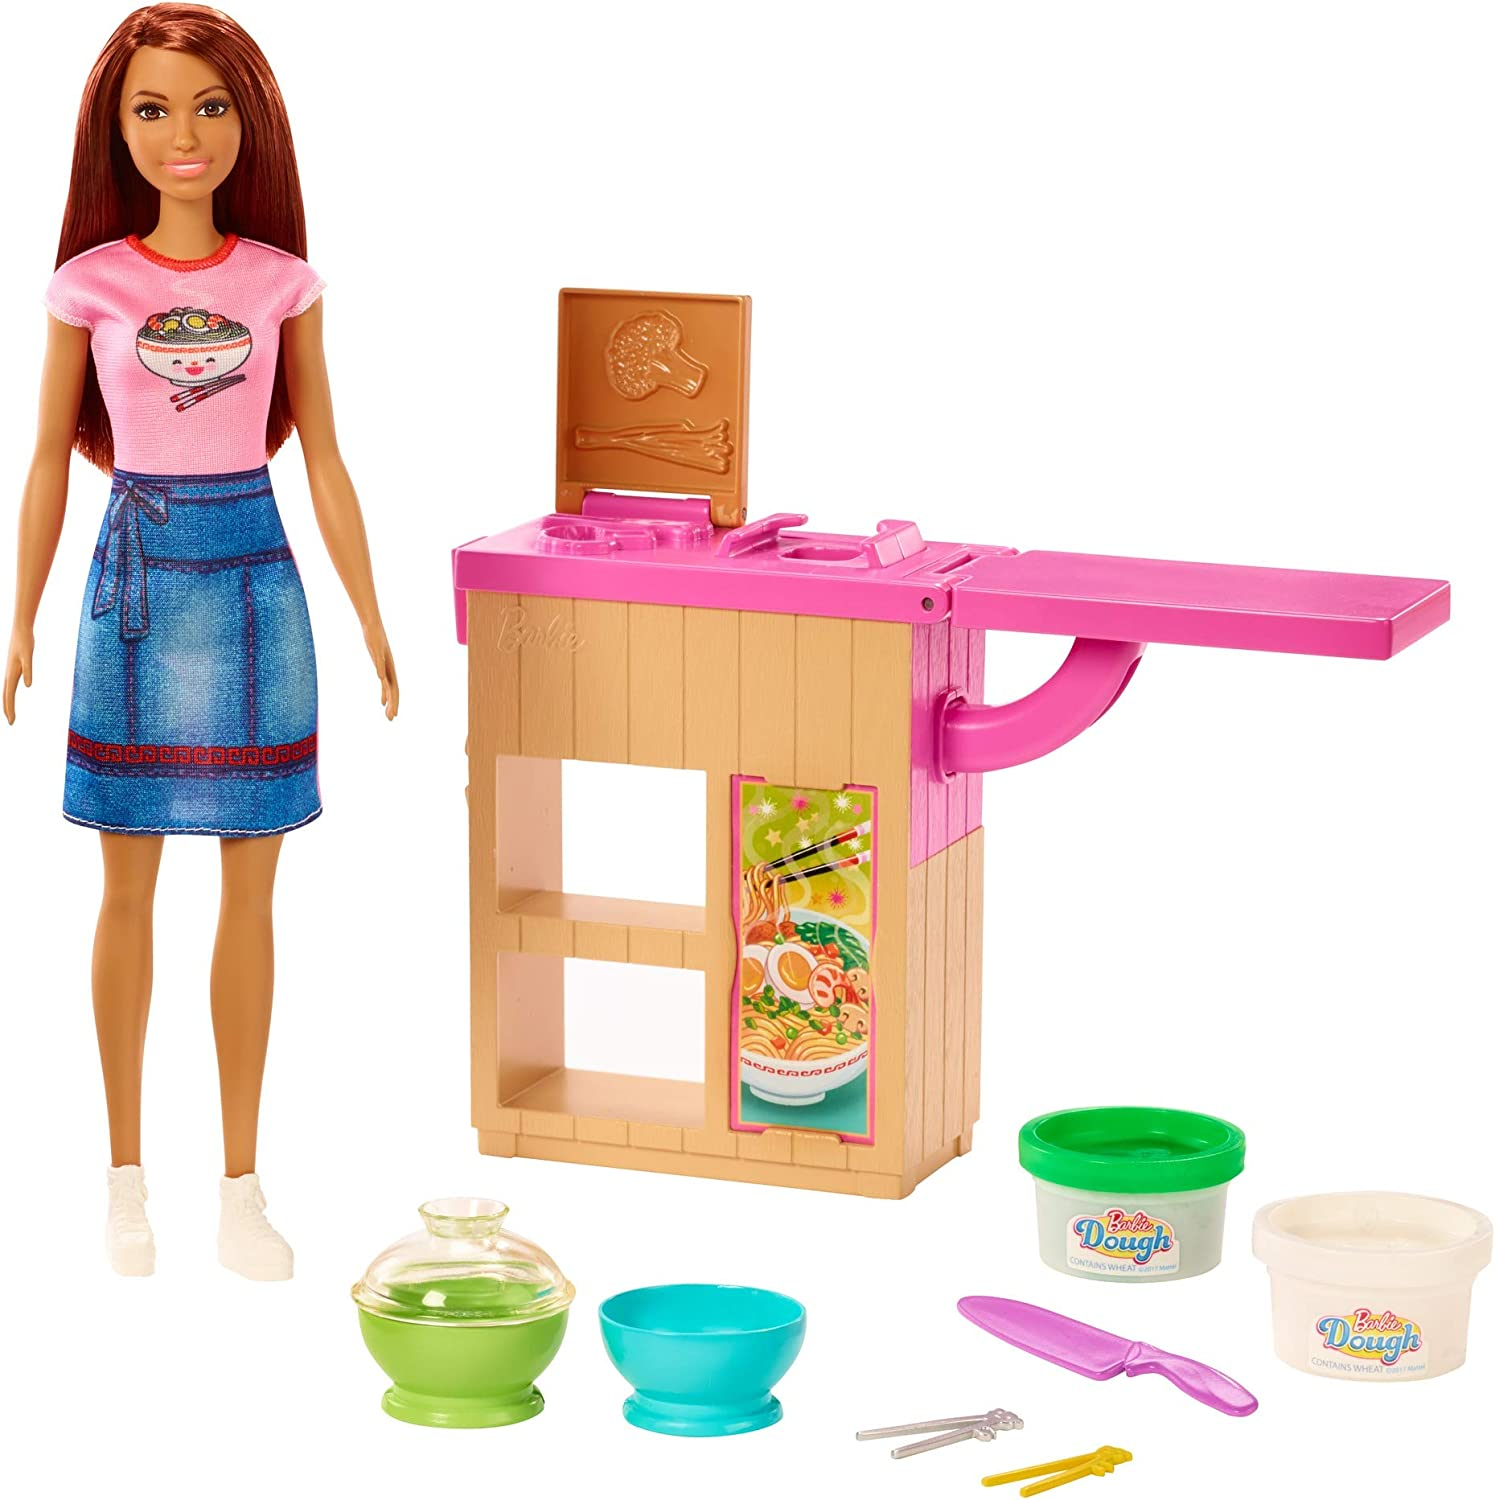 Barbie Noodle Bar Playset with Brunette Doll, Workstation, 2 White and Green Dough Containers, 2 Bowls, Play Knife and 2 Pairs of Chopsticks for Ages 4 and Up